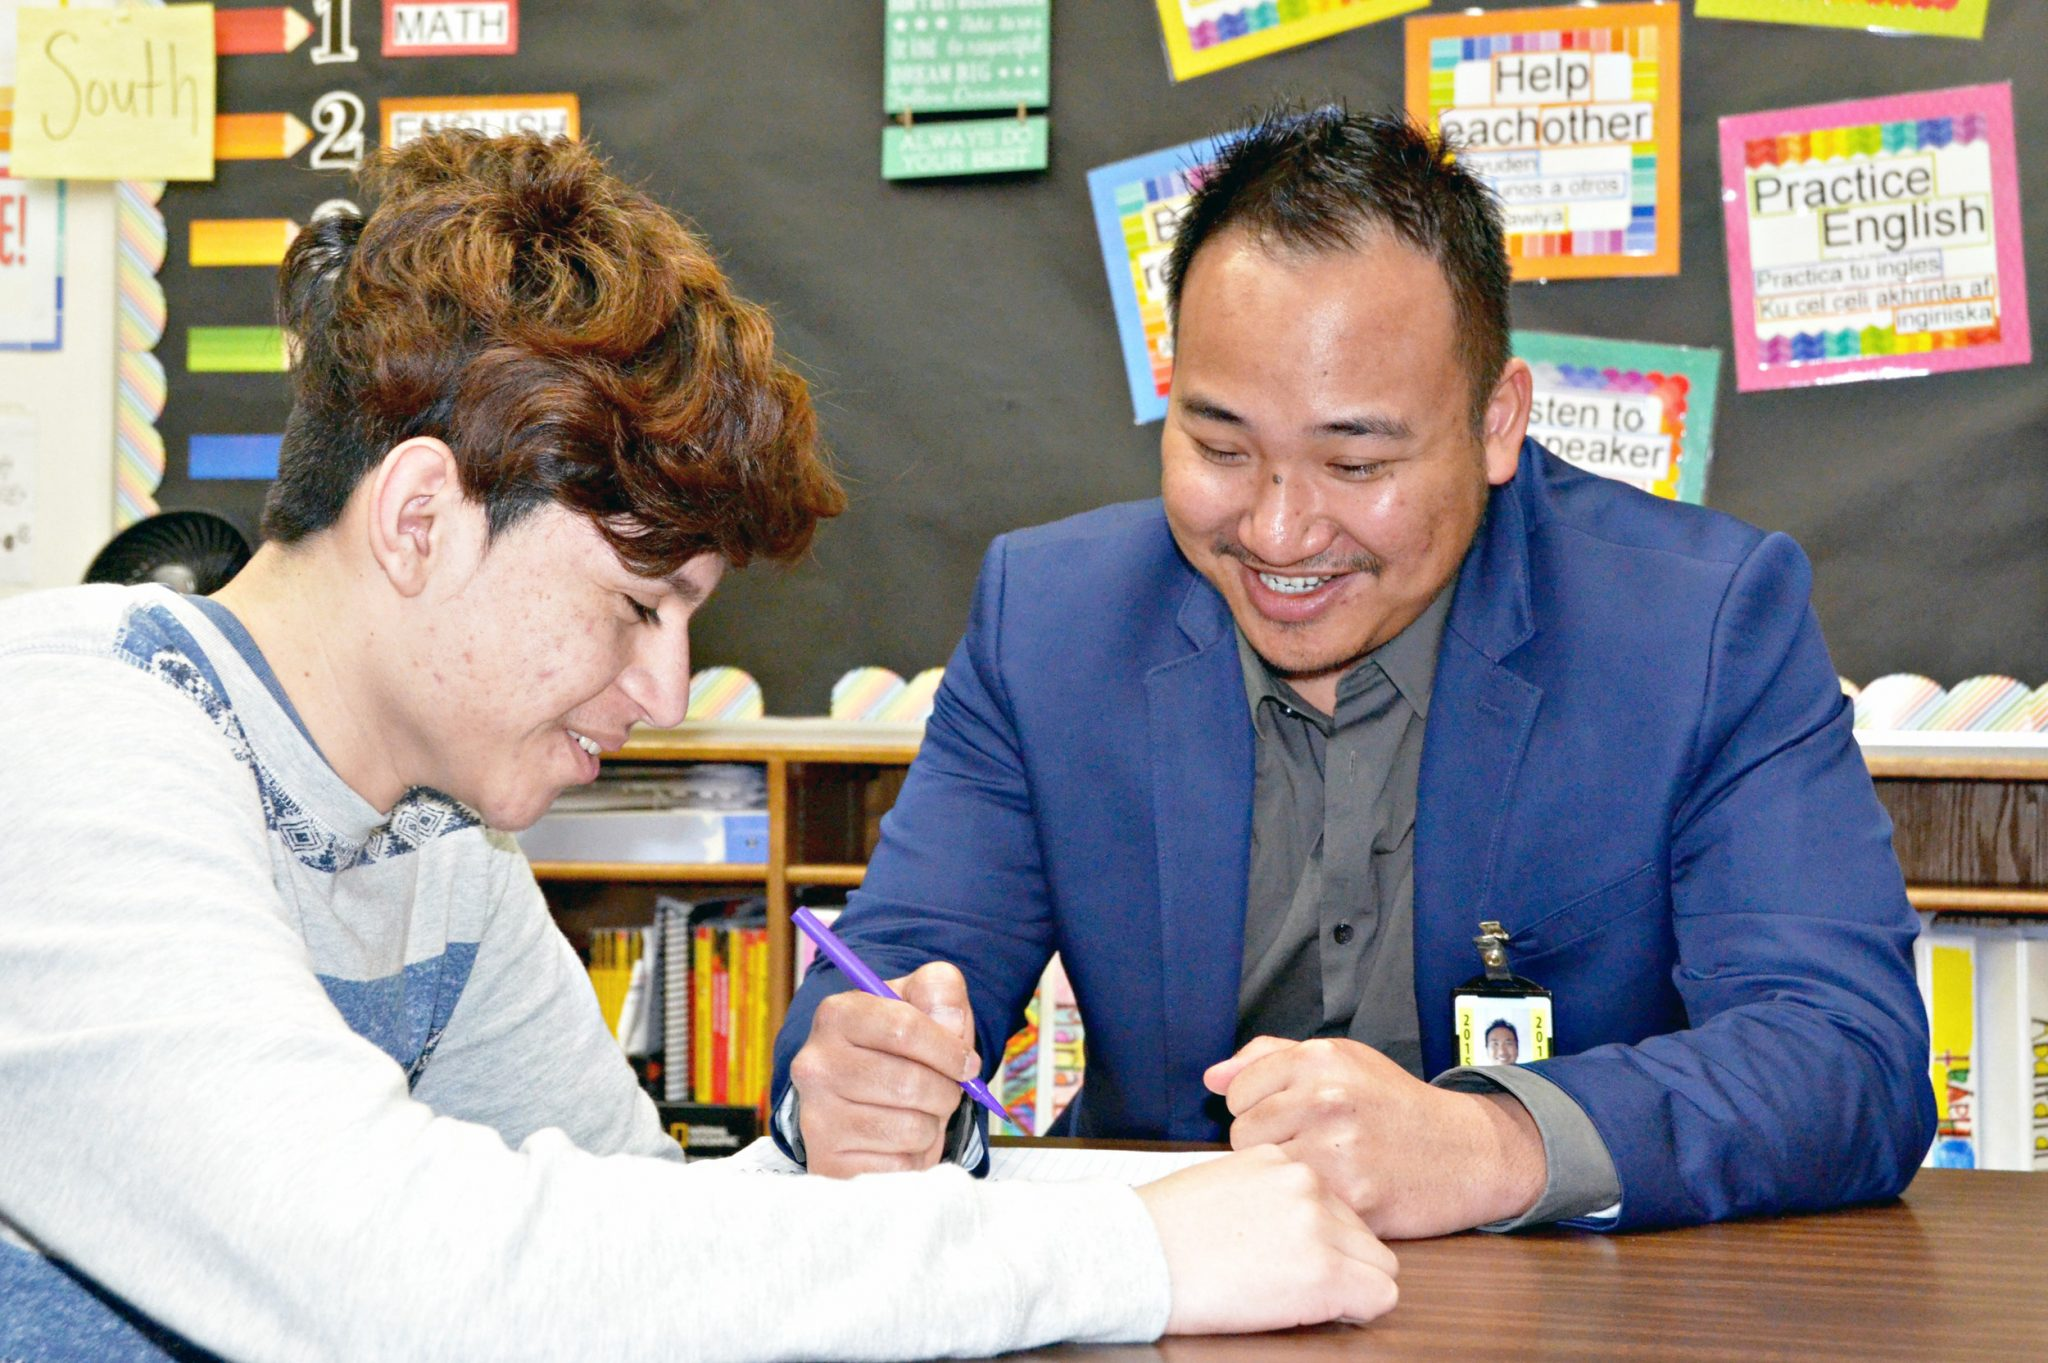 Sam Ouk, an English Language Coordinator for Faribault Public Schools, works with a student.